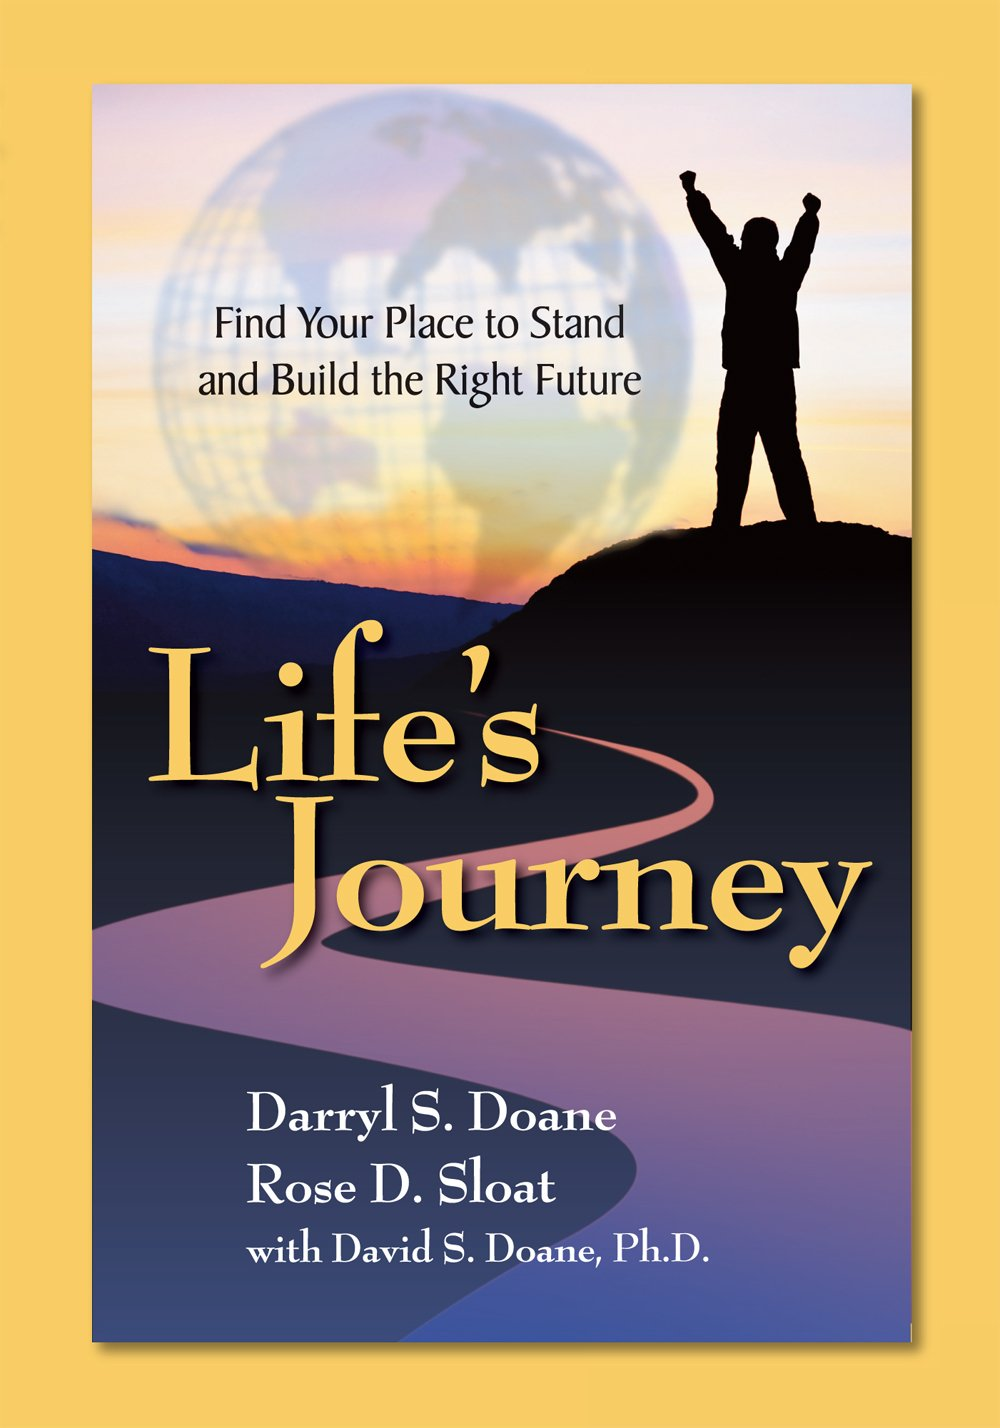 Life's Journey - Find Your Place to Stand & Build the Right Future PDF